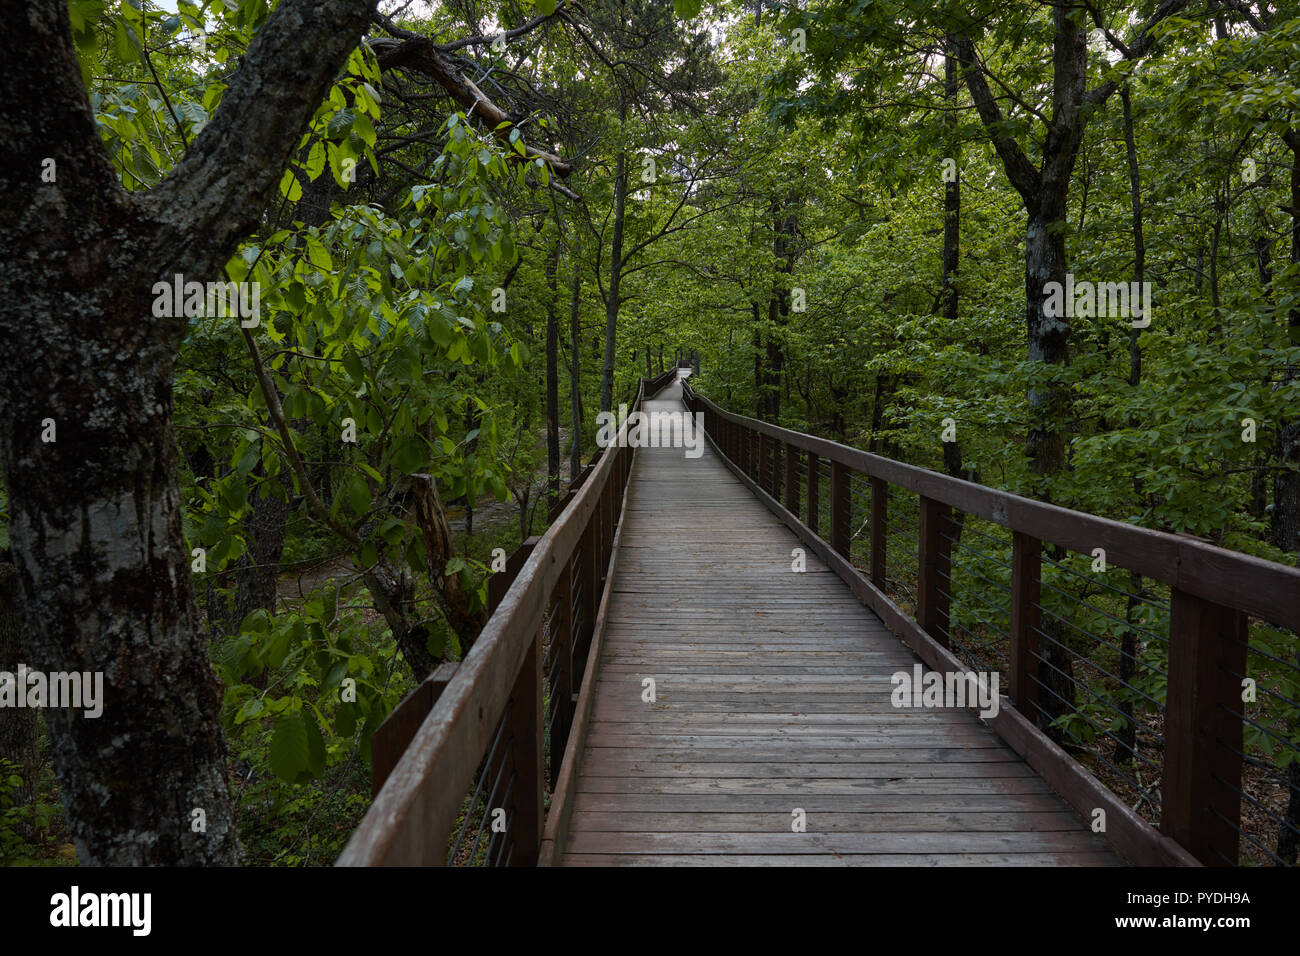 Doug Ghee trail in Cheaha State Park, Alabama - Stock Image